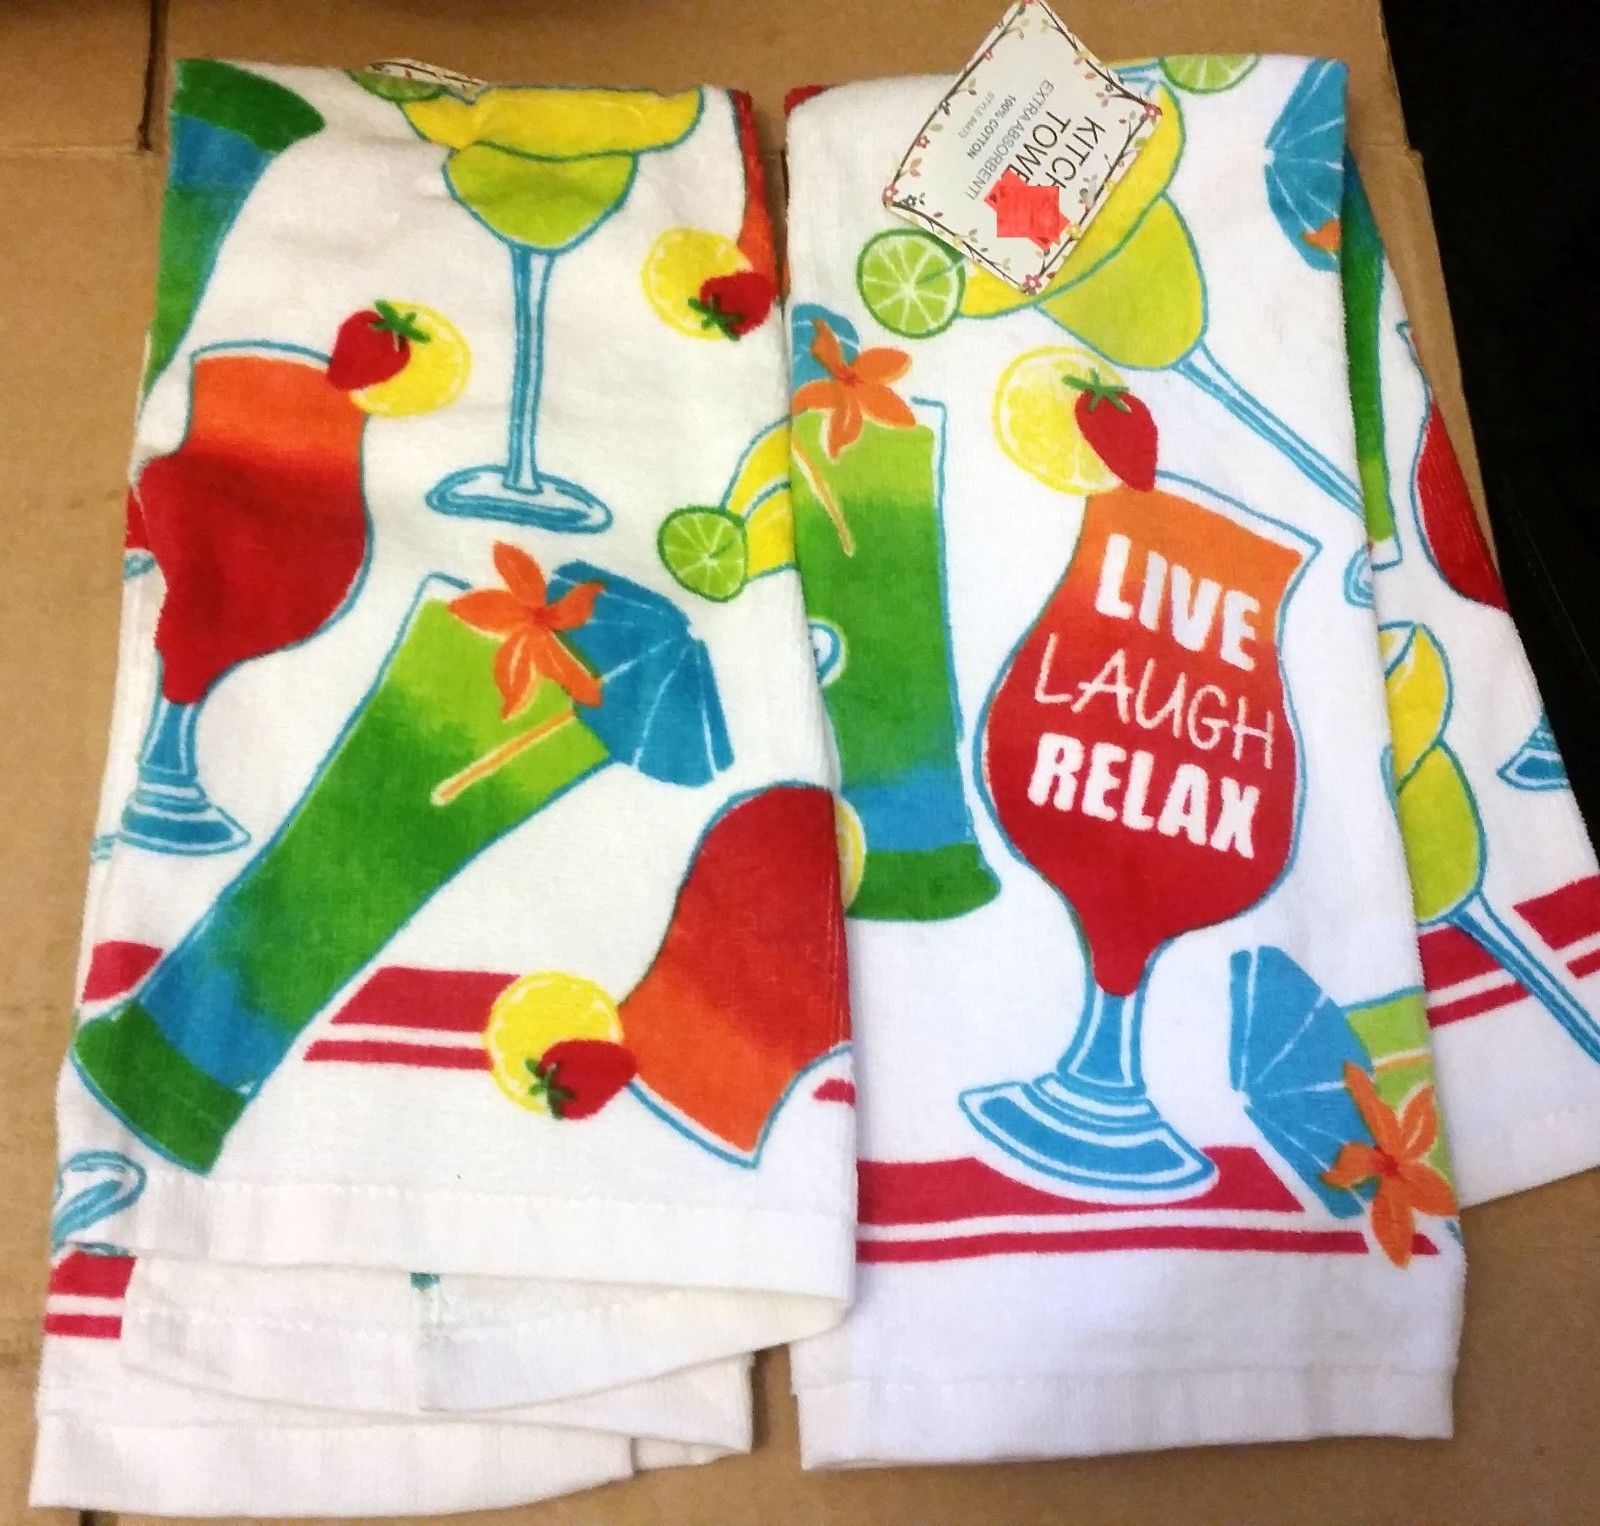 "2 SAME PRINTED TOWELS (15"" x 25"") COCKTAILS, LIVE LAUGH RELAX by AM - $10.88"